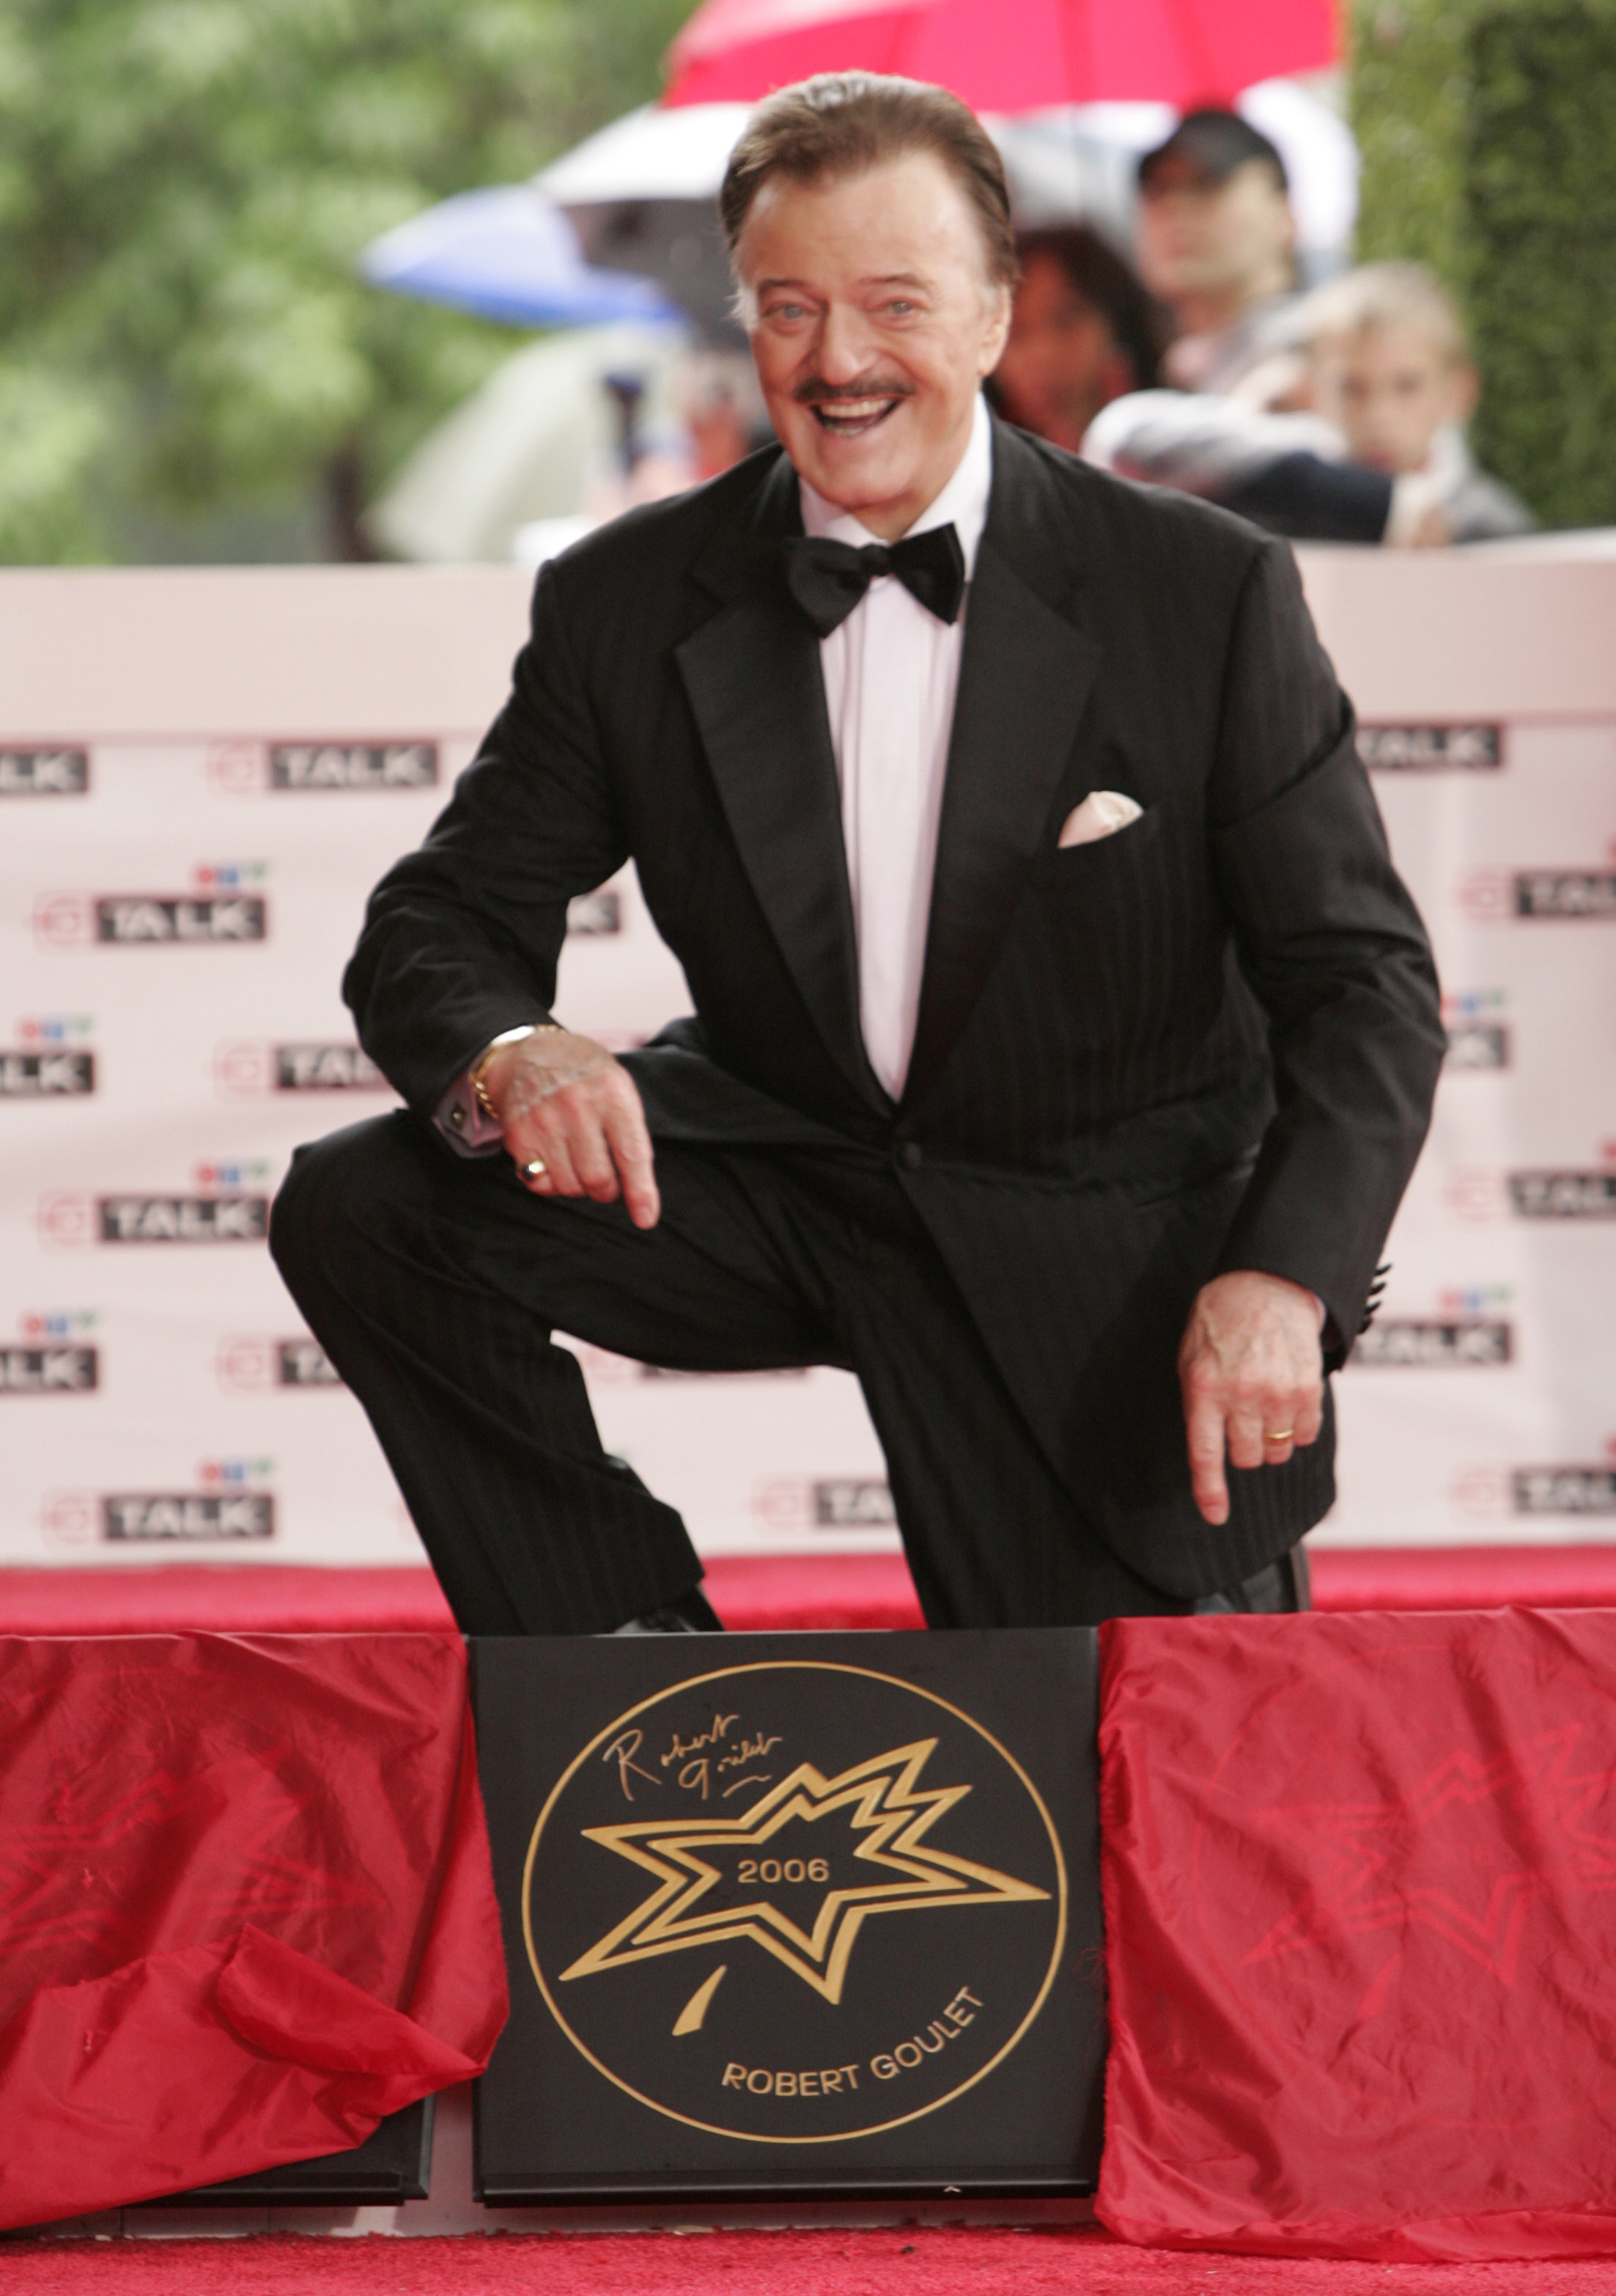 Robert Goulet - Star on Canada's Walk of Fame (2006)